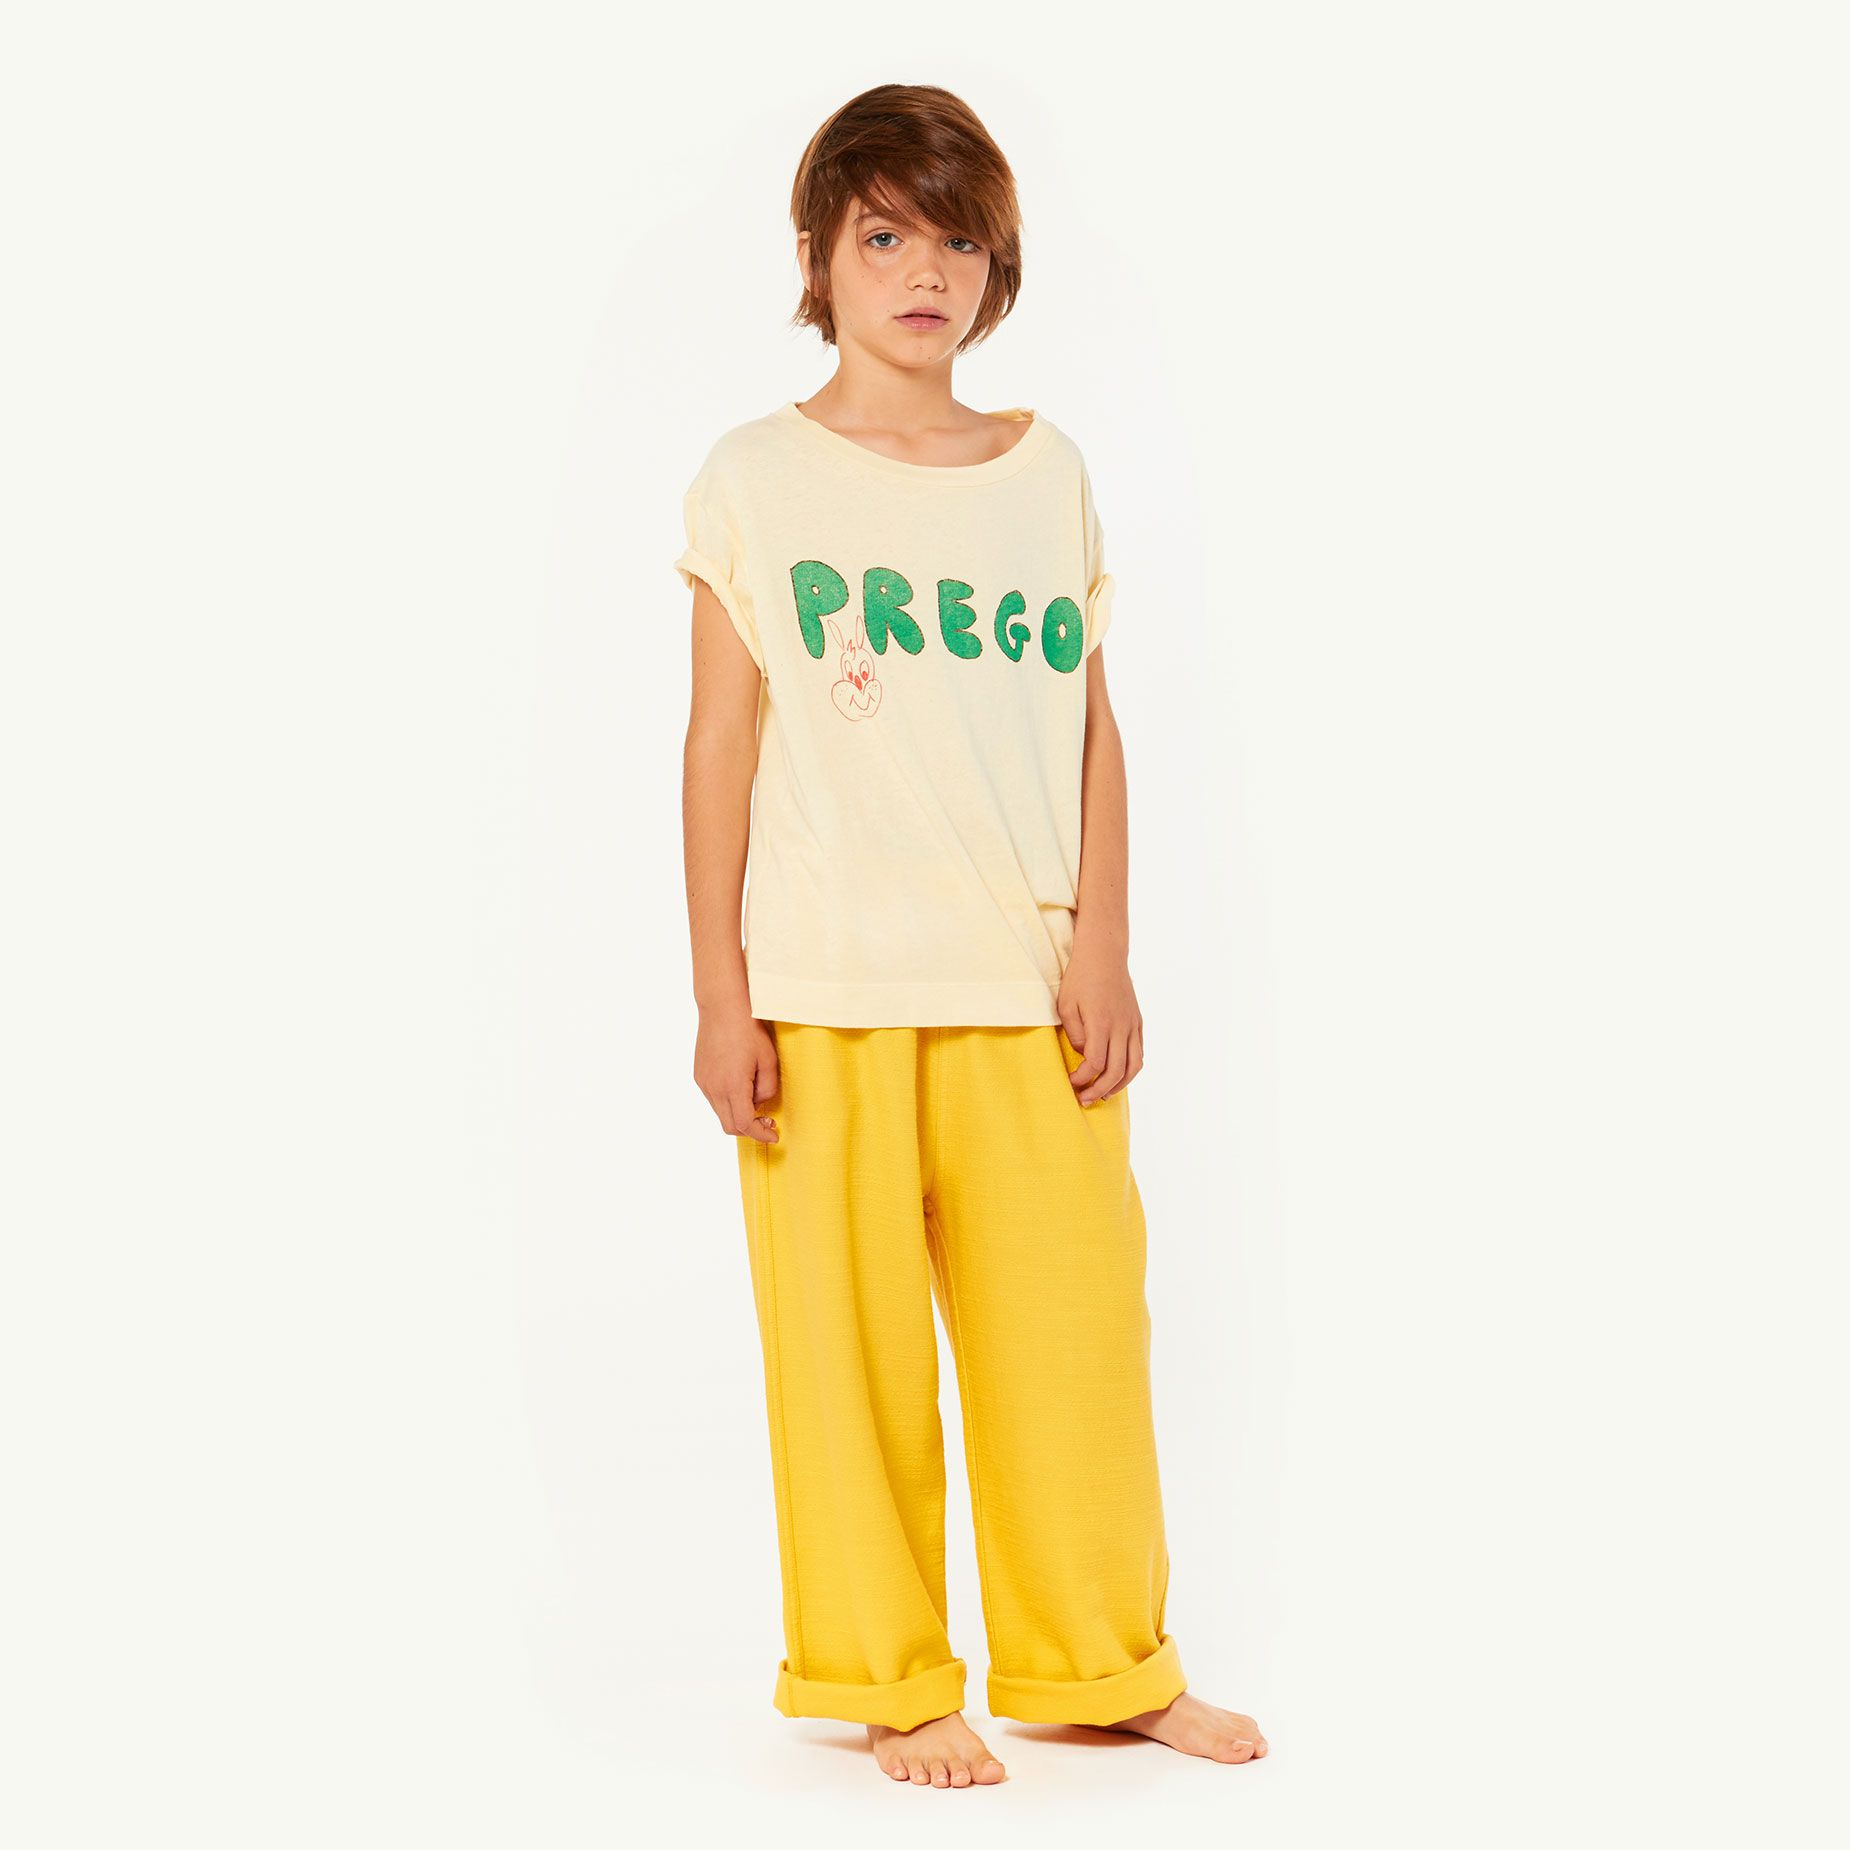 Prego Rooster T-Shirt img-4